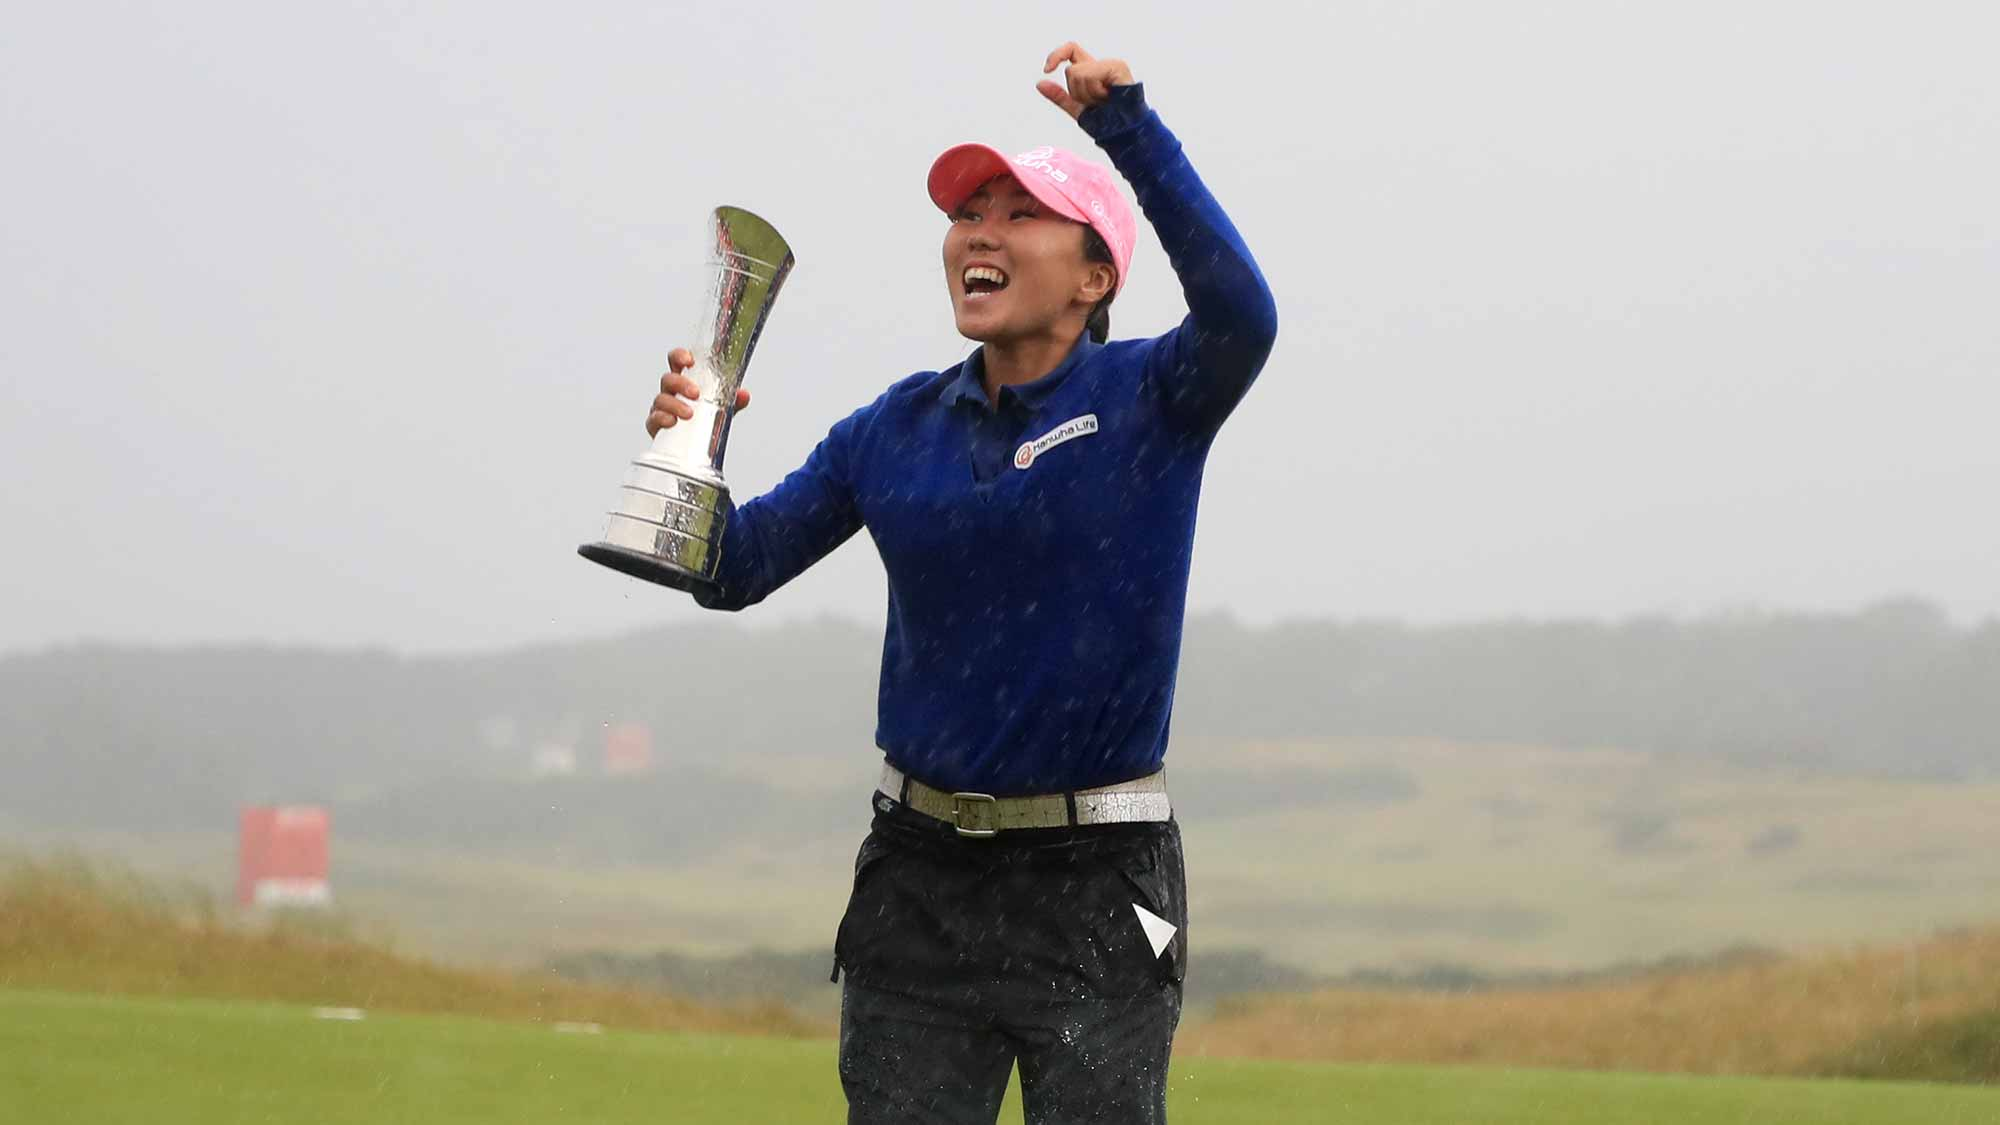 In-Kyung Kim of Korea celebrates with the trophy following her victory during the final round of the Ricoh Women's British Open at Kingsbarns Golf Links